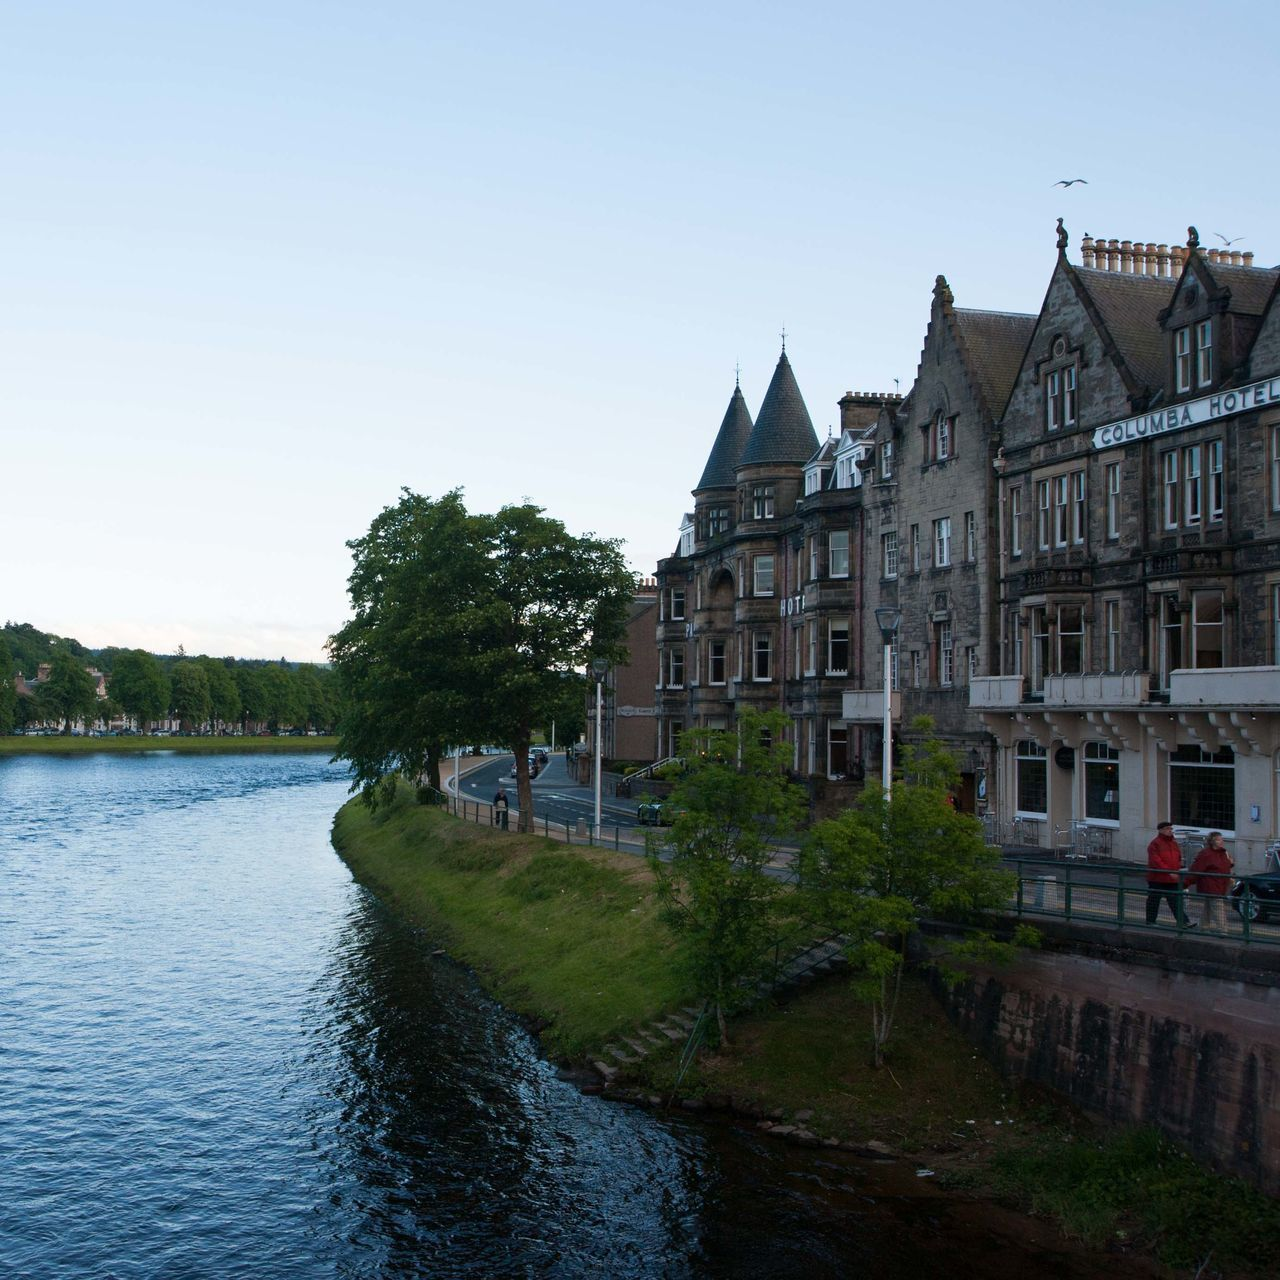 Architecture Building Exterior Built Structure City Clear Sky Day Drumnadrochit Inverness Isle Of Mull Isle Of Skye Scotland Nature No People Oban, Argyll, Scotland Outdoors Porvoo River Sky Tree Uig Water